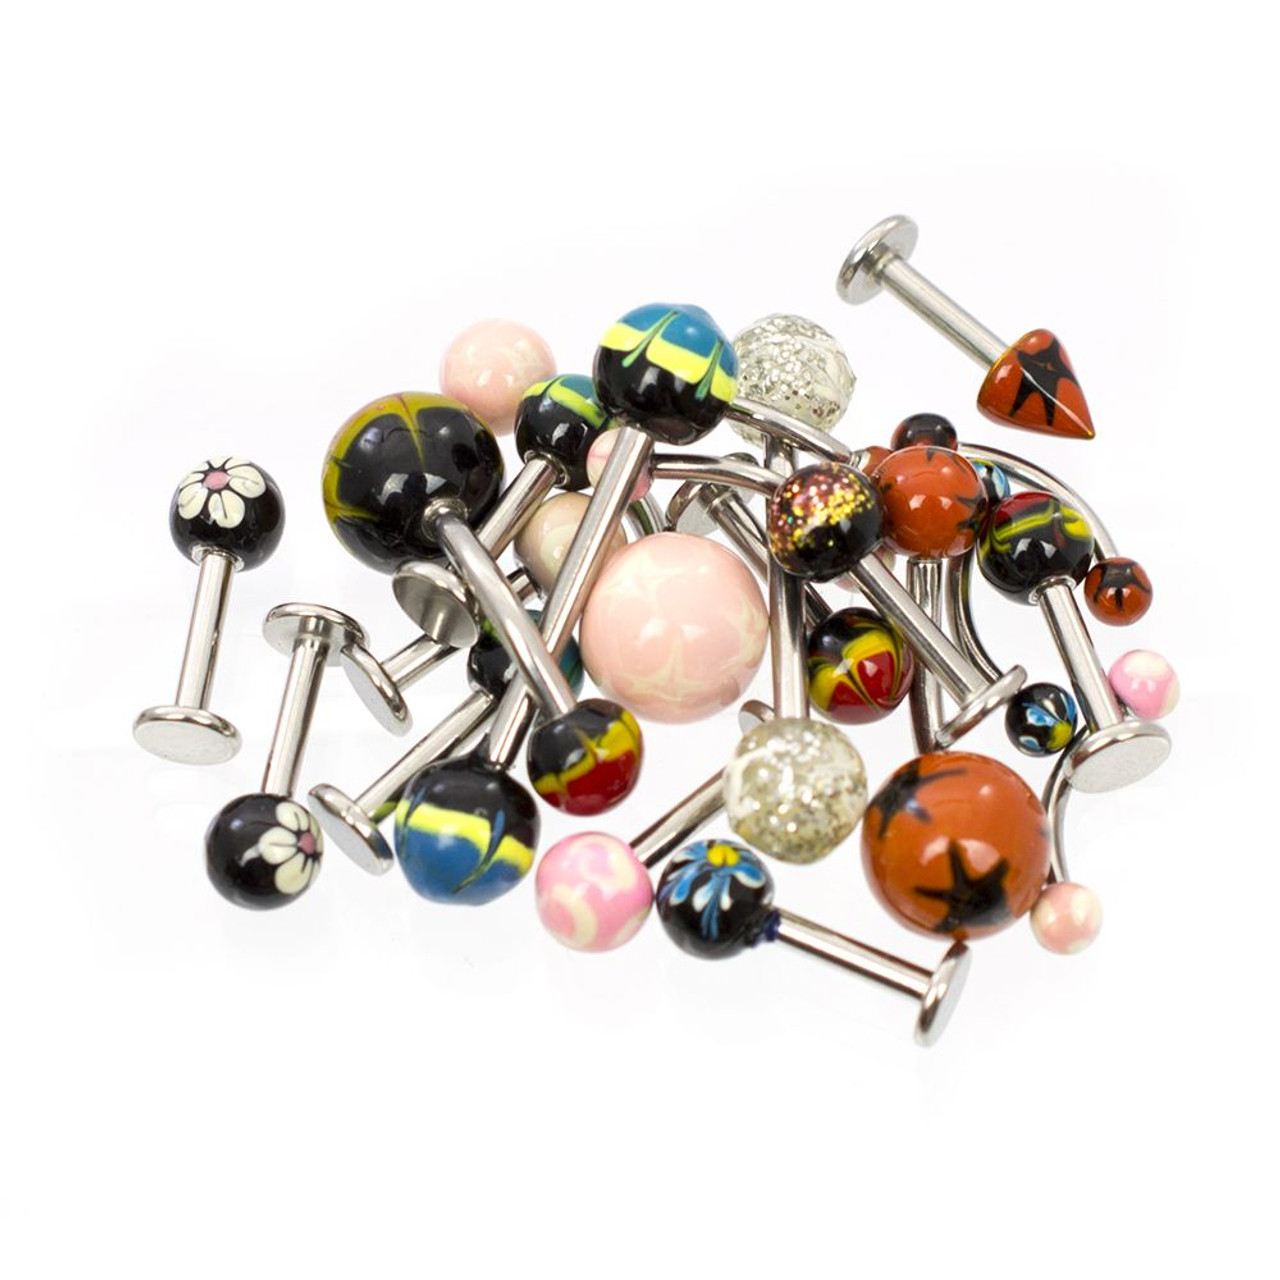 Pack of 10 Captive Ball Rings Wholesale Body Jewellery Belly Eyebrow Nipple